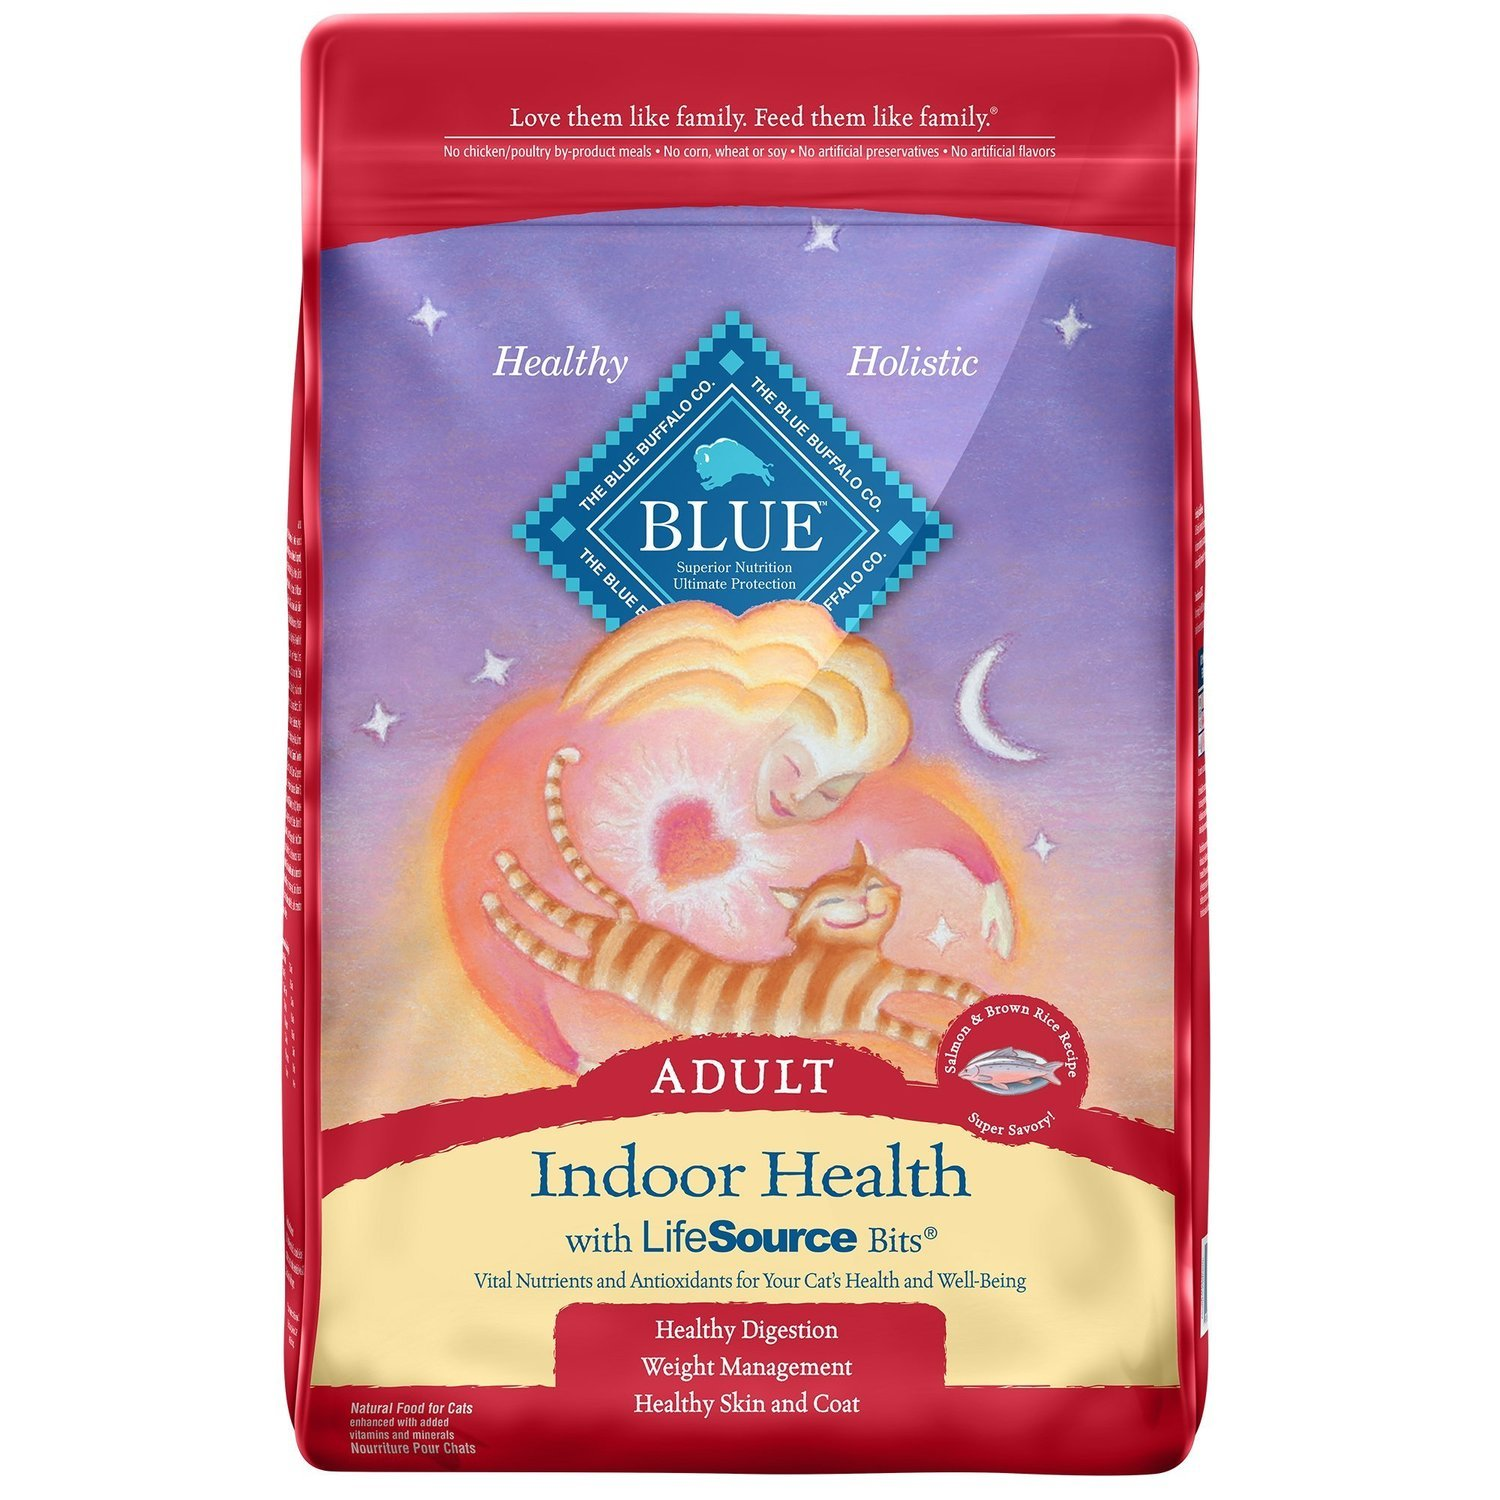 Blue Buffalo Indoor Health Salmon & Rice Adult Dry Cat Food, 15 lbs. (2/19) (A.P2)